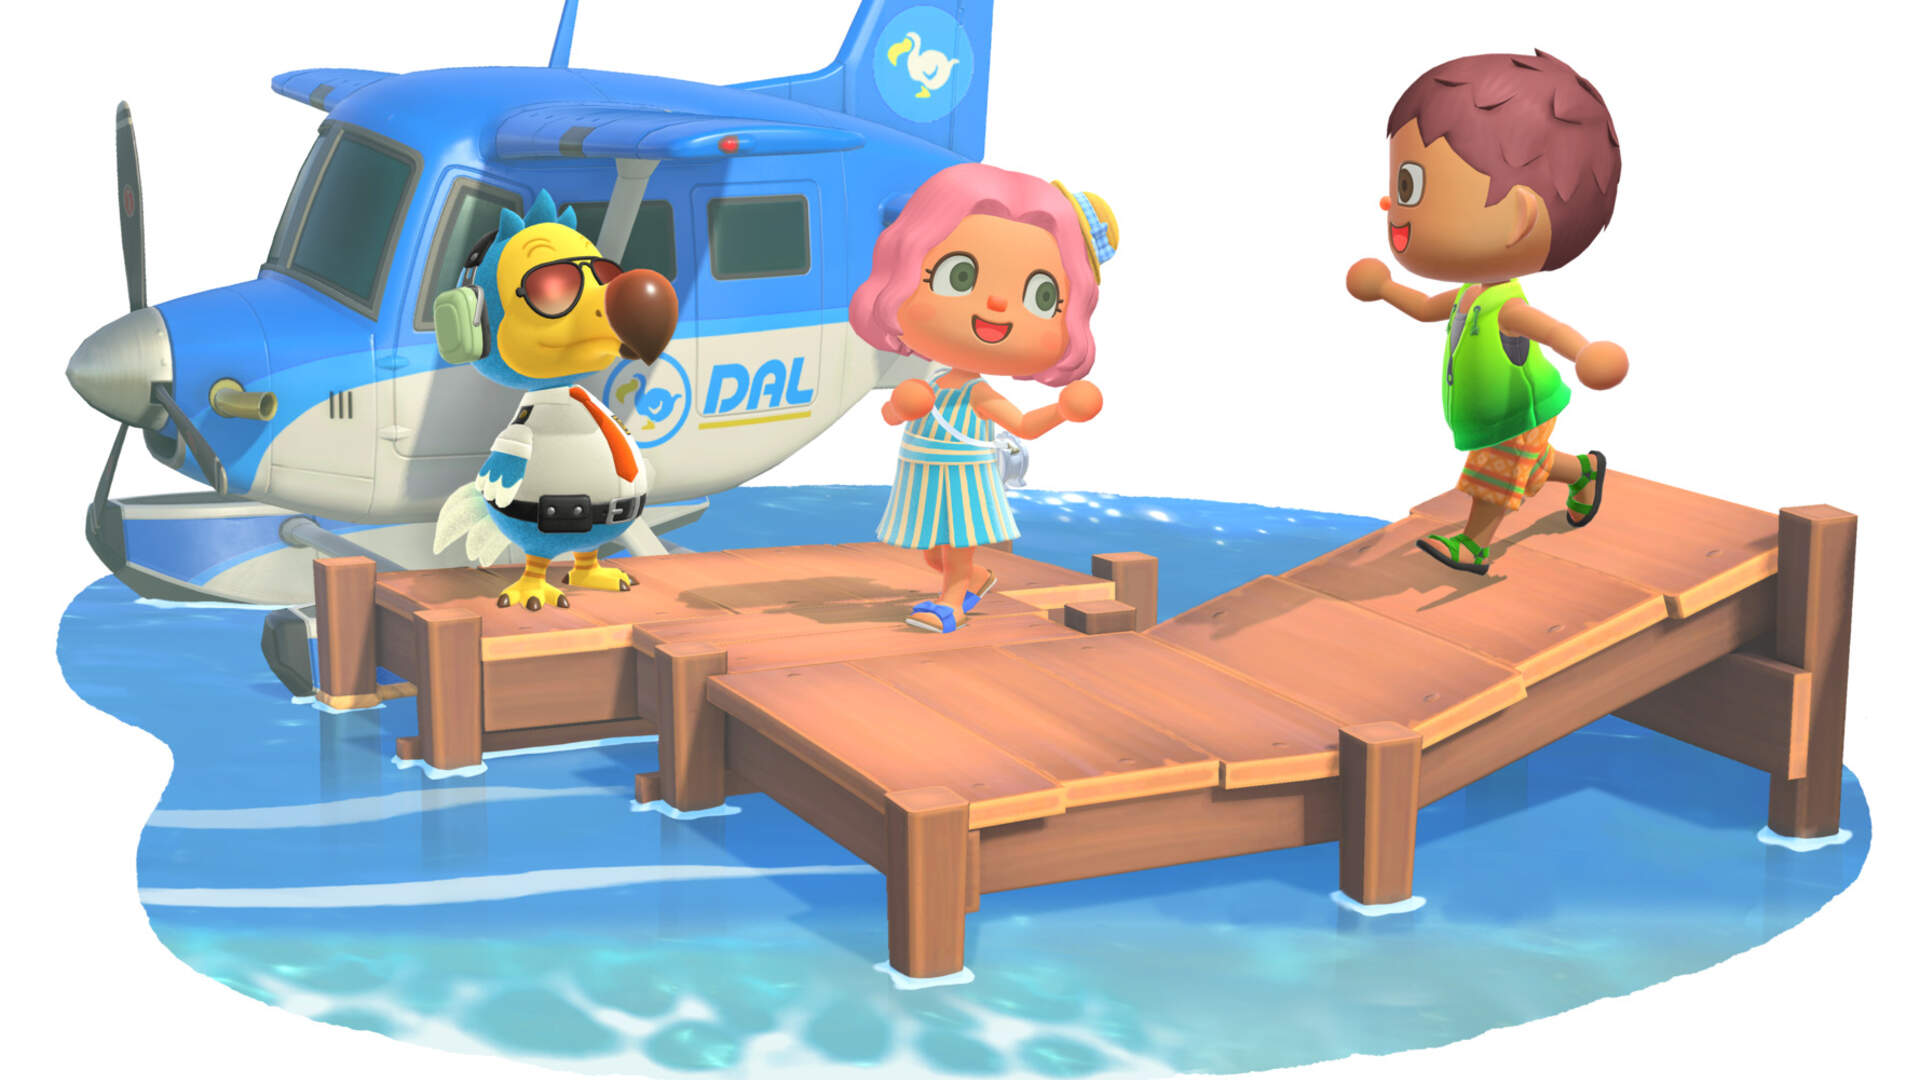 This Animal Crossing: New Horizons Island is an Amazing Reproduction of Earthbound's Onett